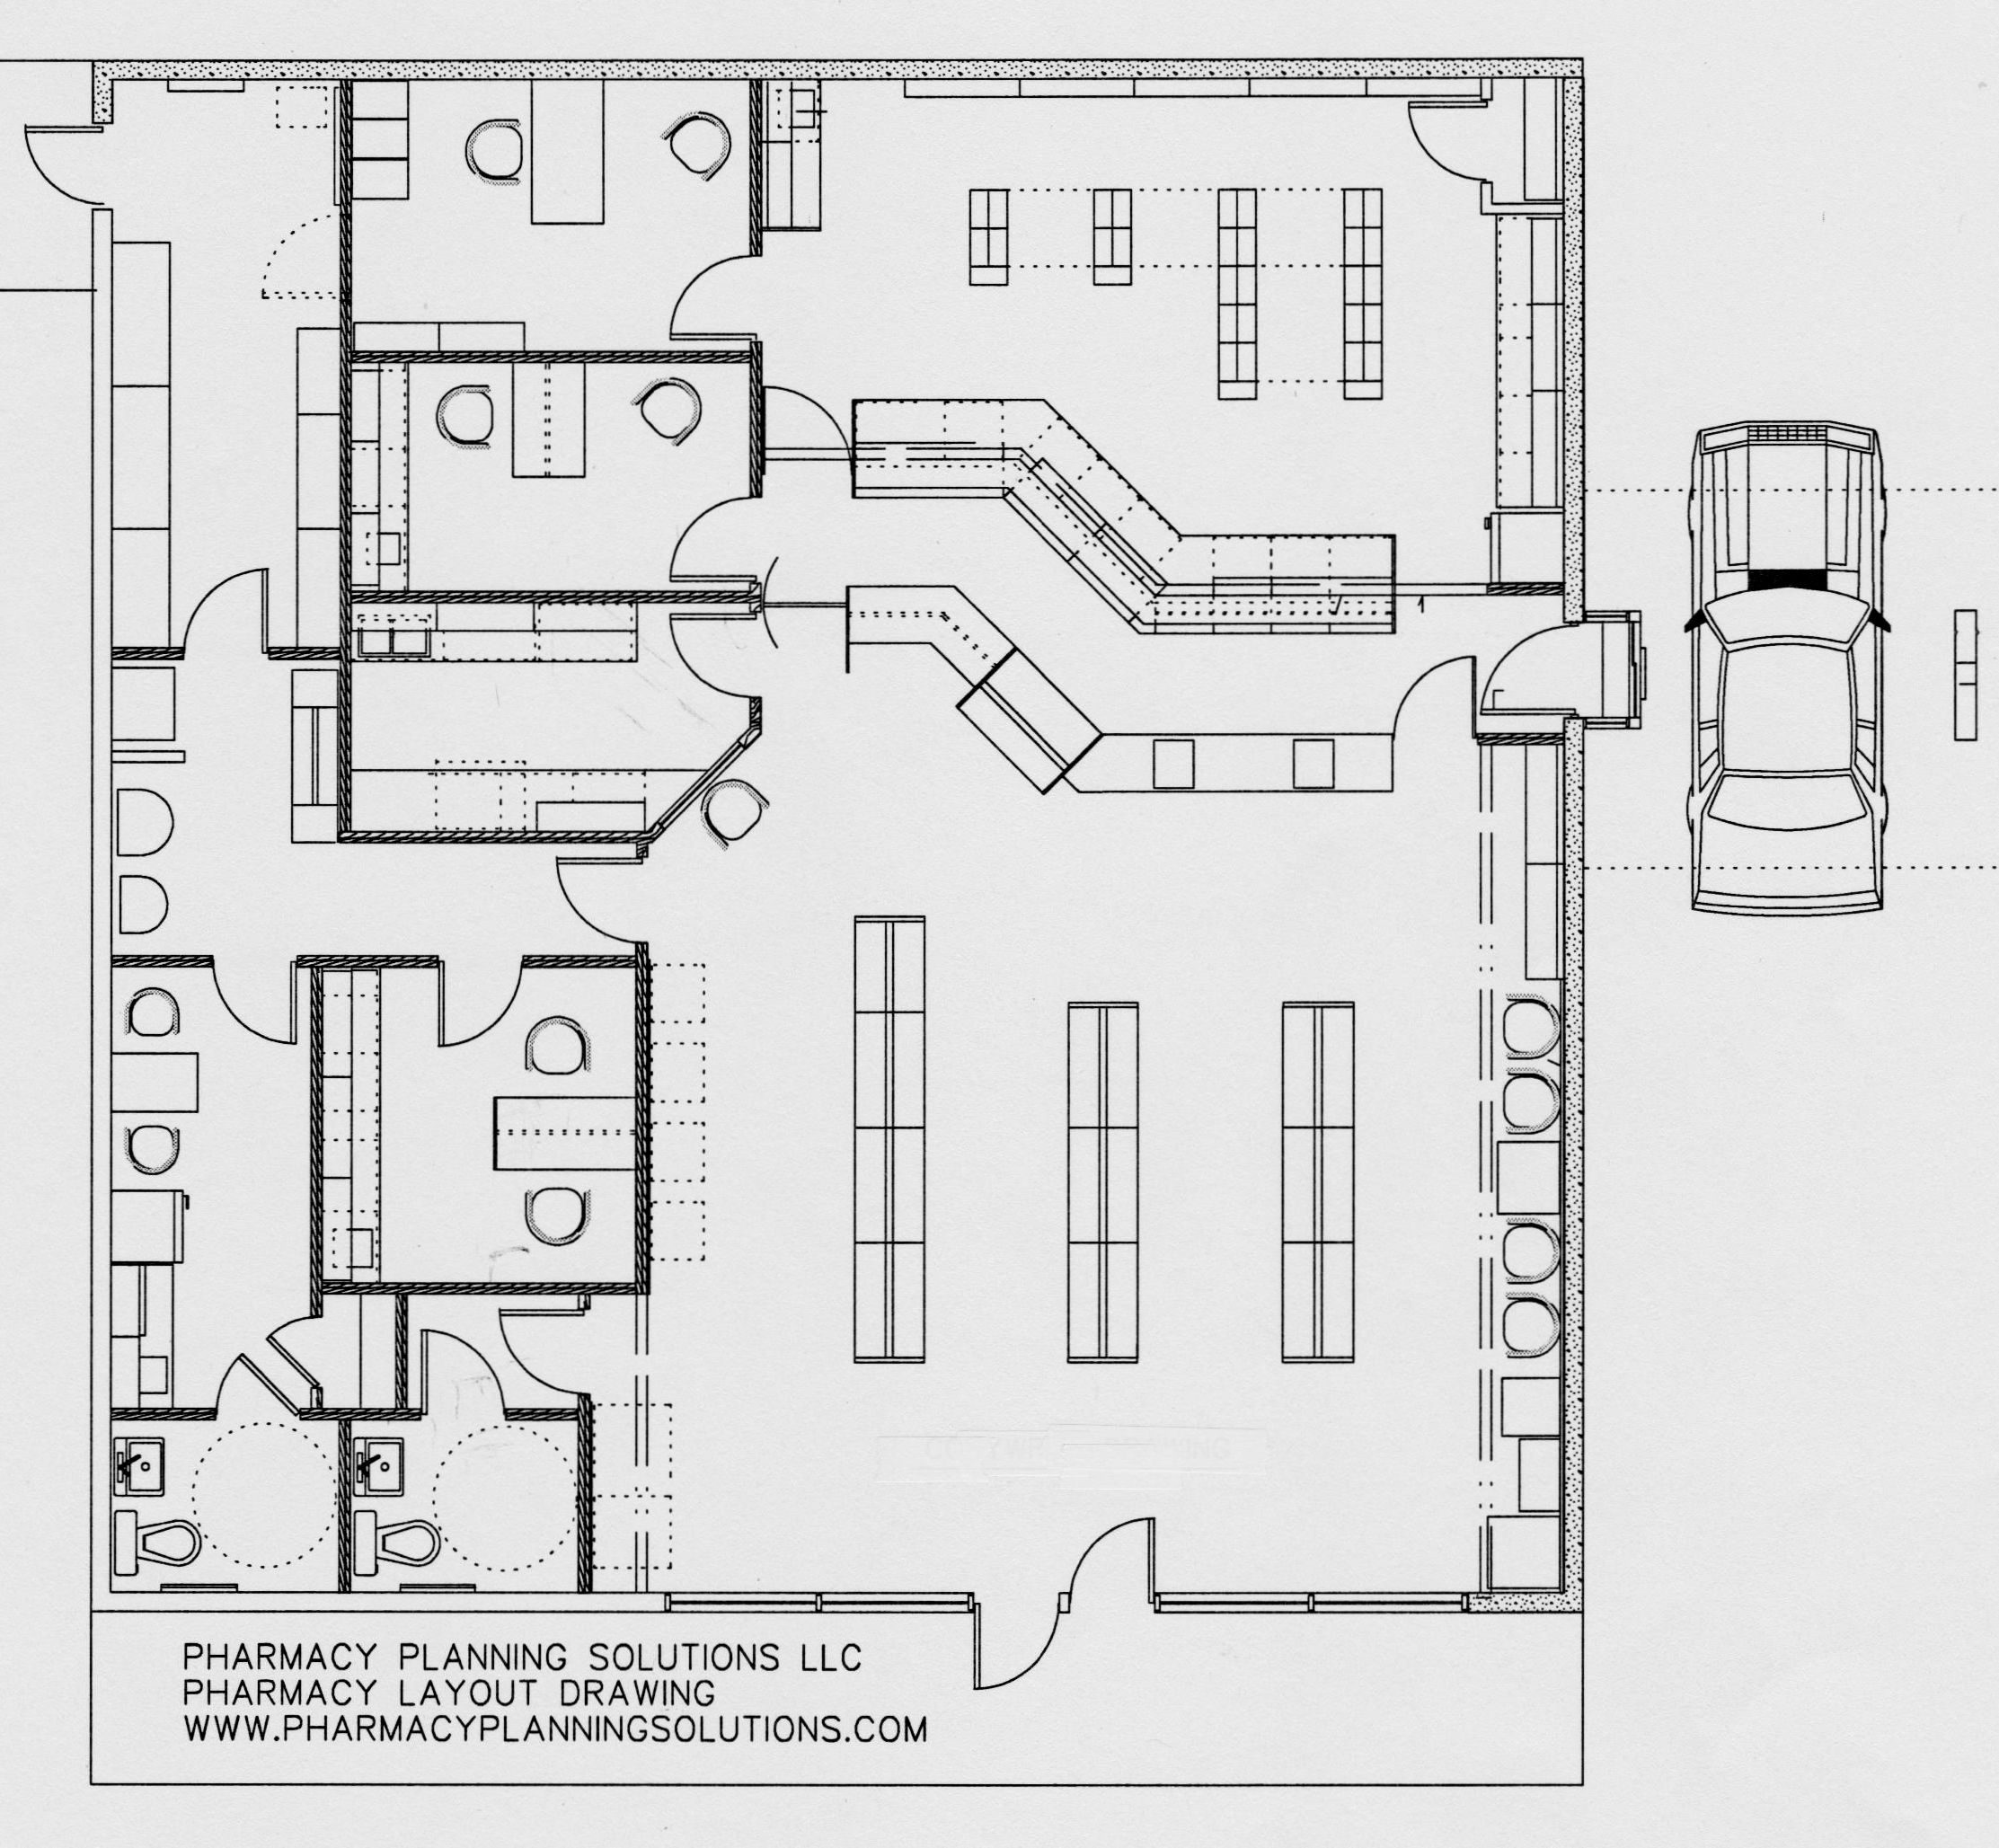 Pharmacy layout by pharmacy planning solutions pharmacy for Pharmacy design floor plans